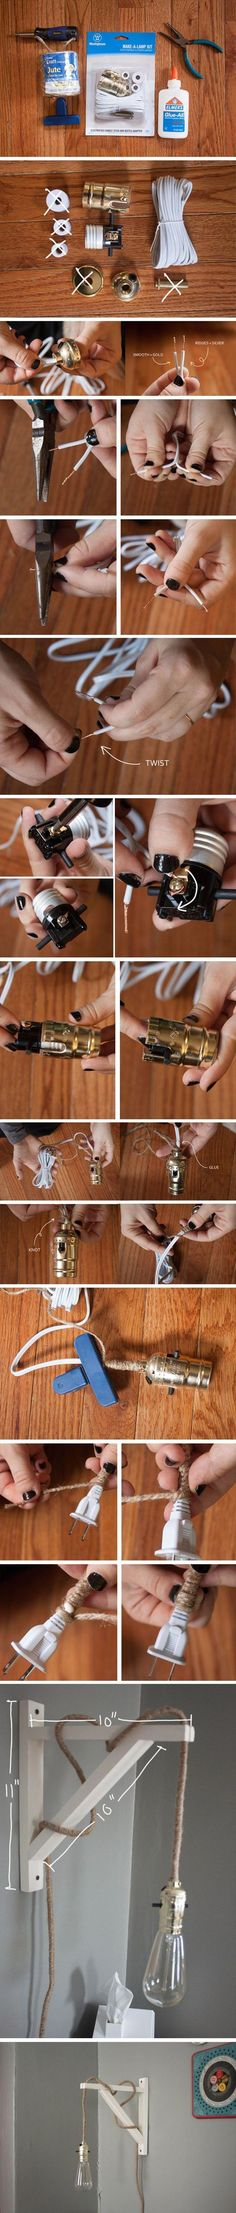 Make a lamp photo instructions - might work for hanging night light : Dump A Day Amazing Do It Yourself Craft Ideas - 40 Pics Strip Lighting, Home Lighting, Diy Luz, Fun Crafts, Diy And Crafts, Craft Projects, Projects To Try, Craft Ideas, Deco Luminaire